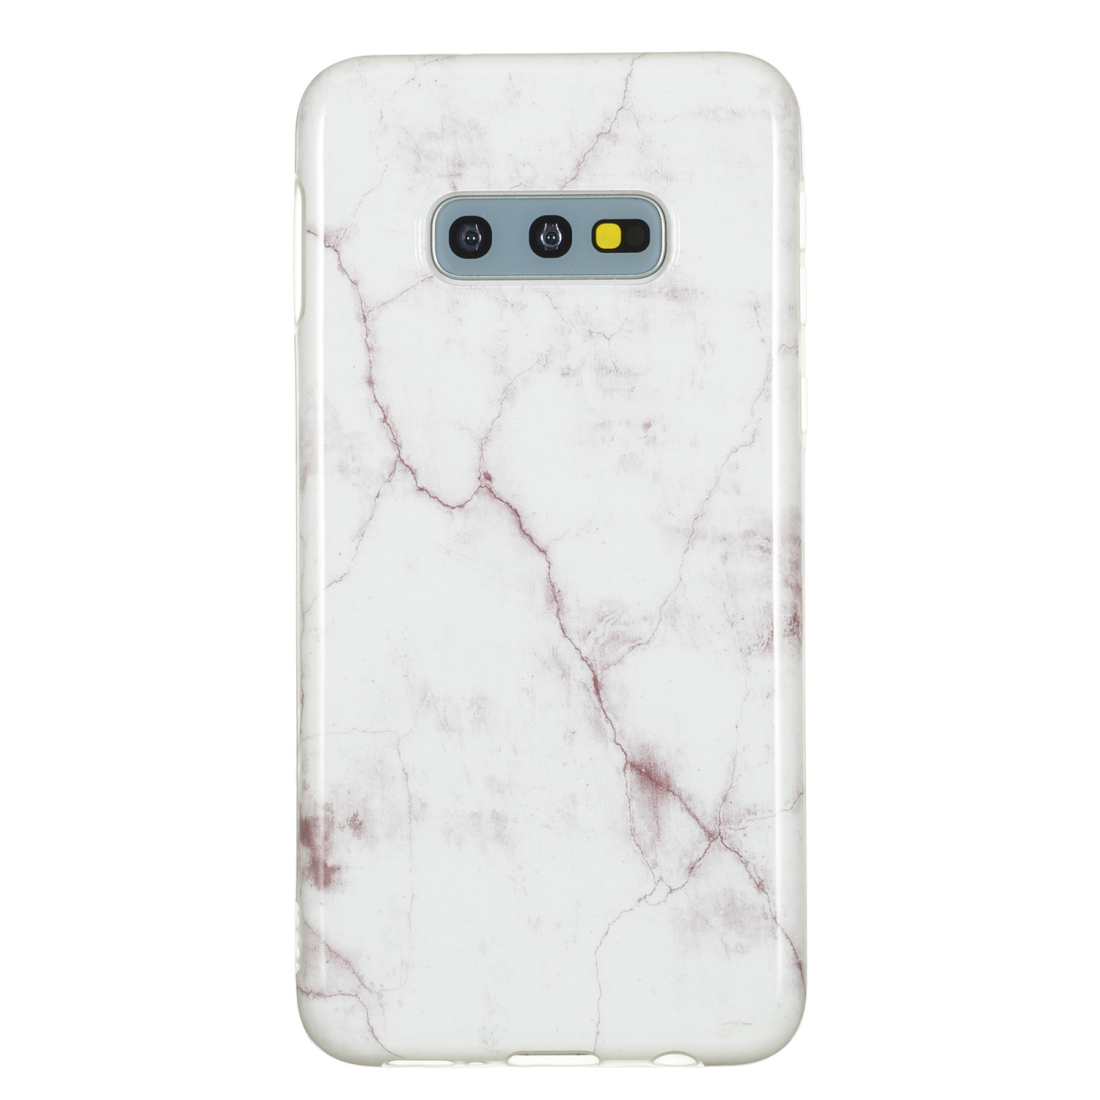 TPU Protective Case For Galaxy S10e (White Marble)